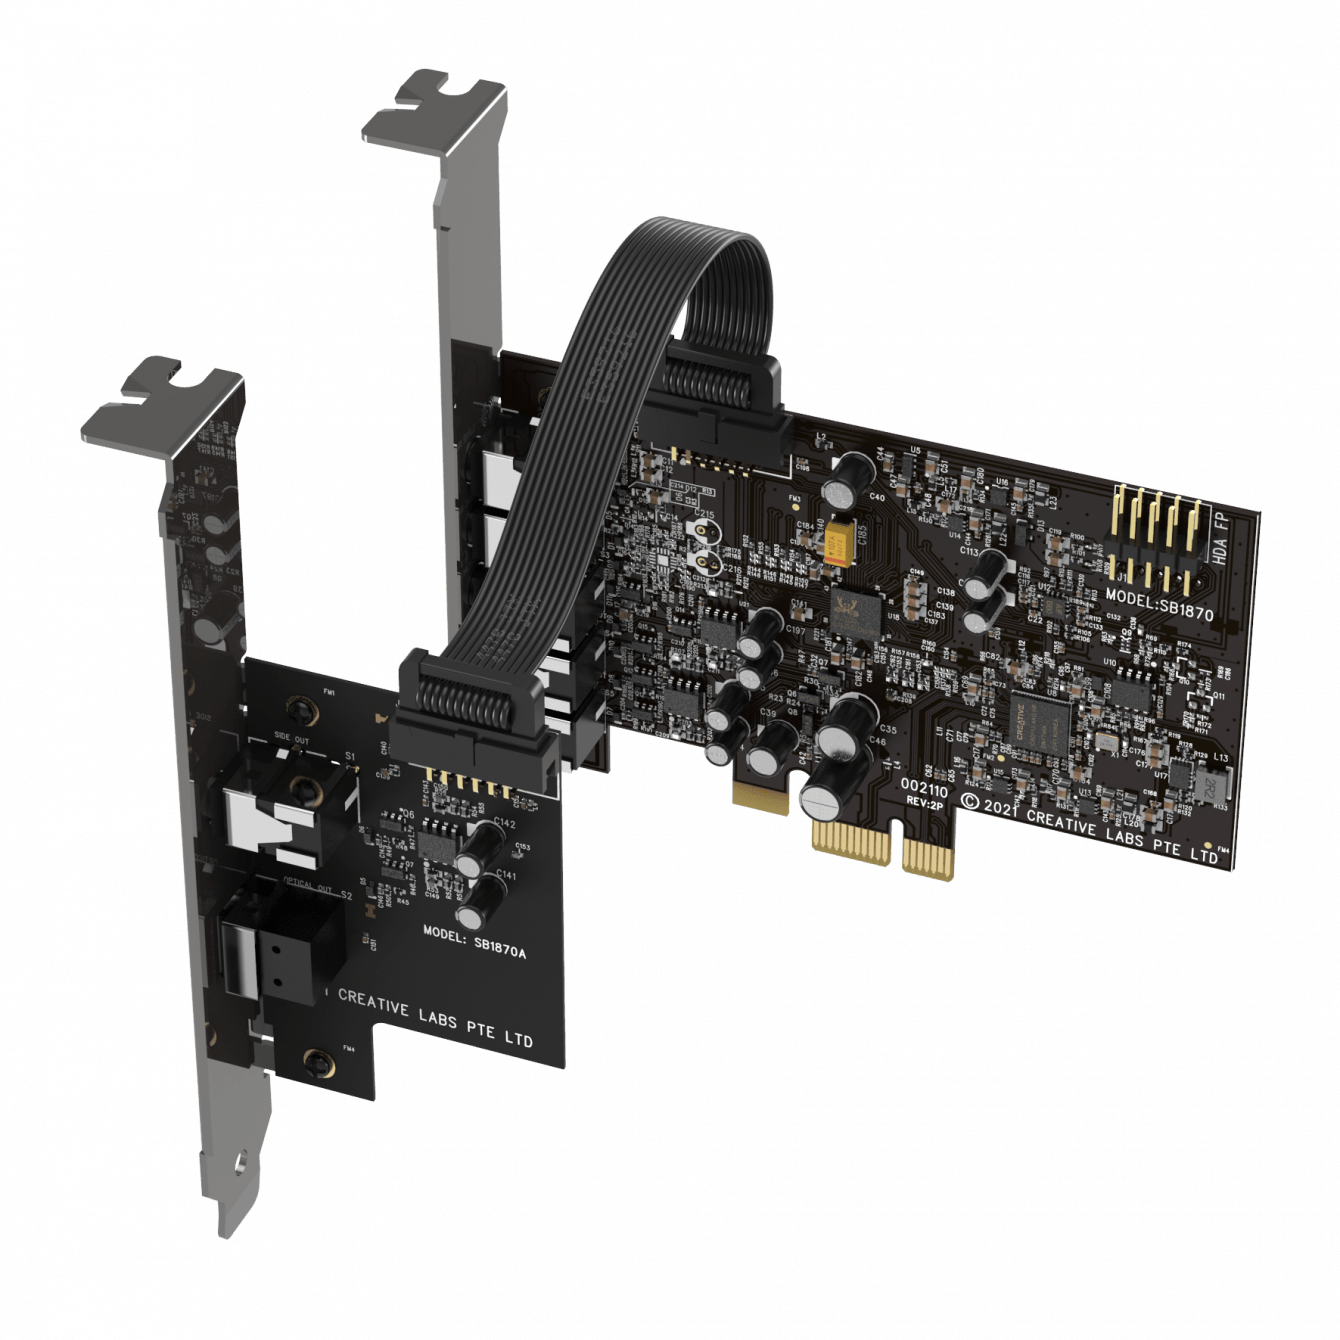 Sound Blaster Audigy Fx V2: the new model of the renowned sound card